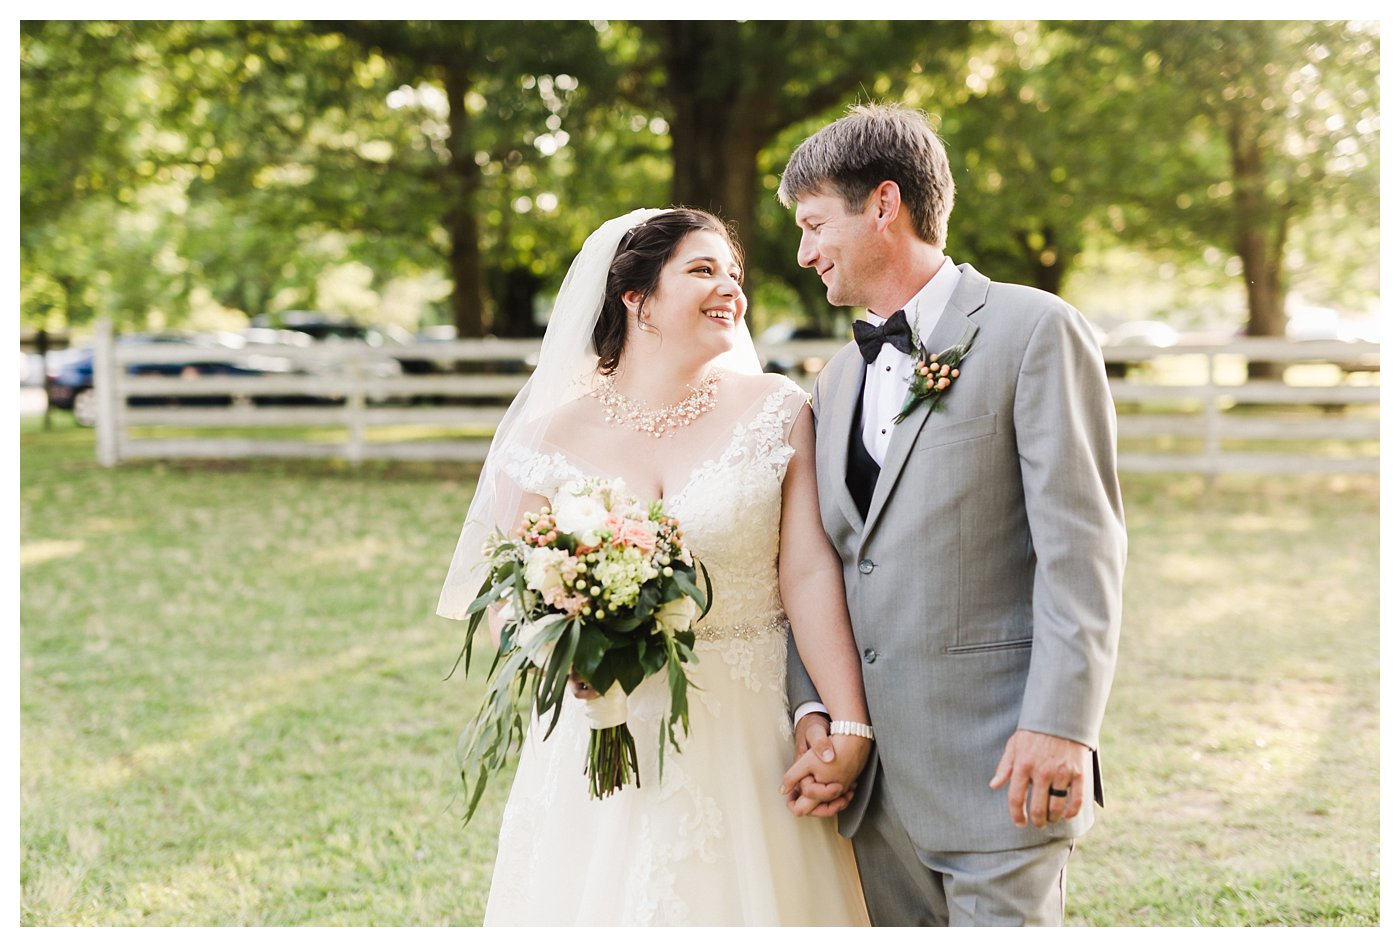 Historic_Hope_Plantation_Wedding_Photography_Sage_Summer_Outdoor_Windsor_NC_0037.jpg